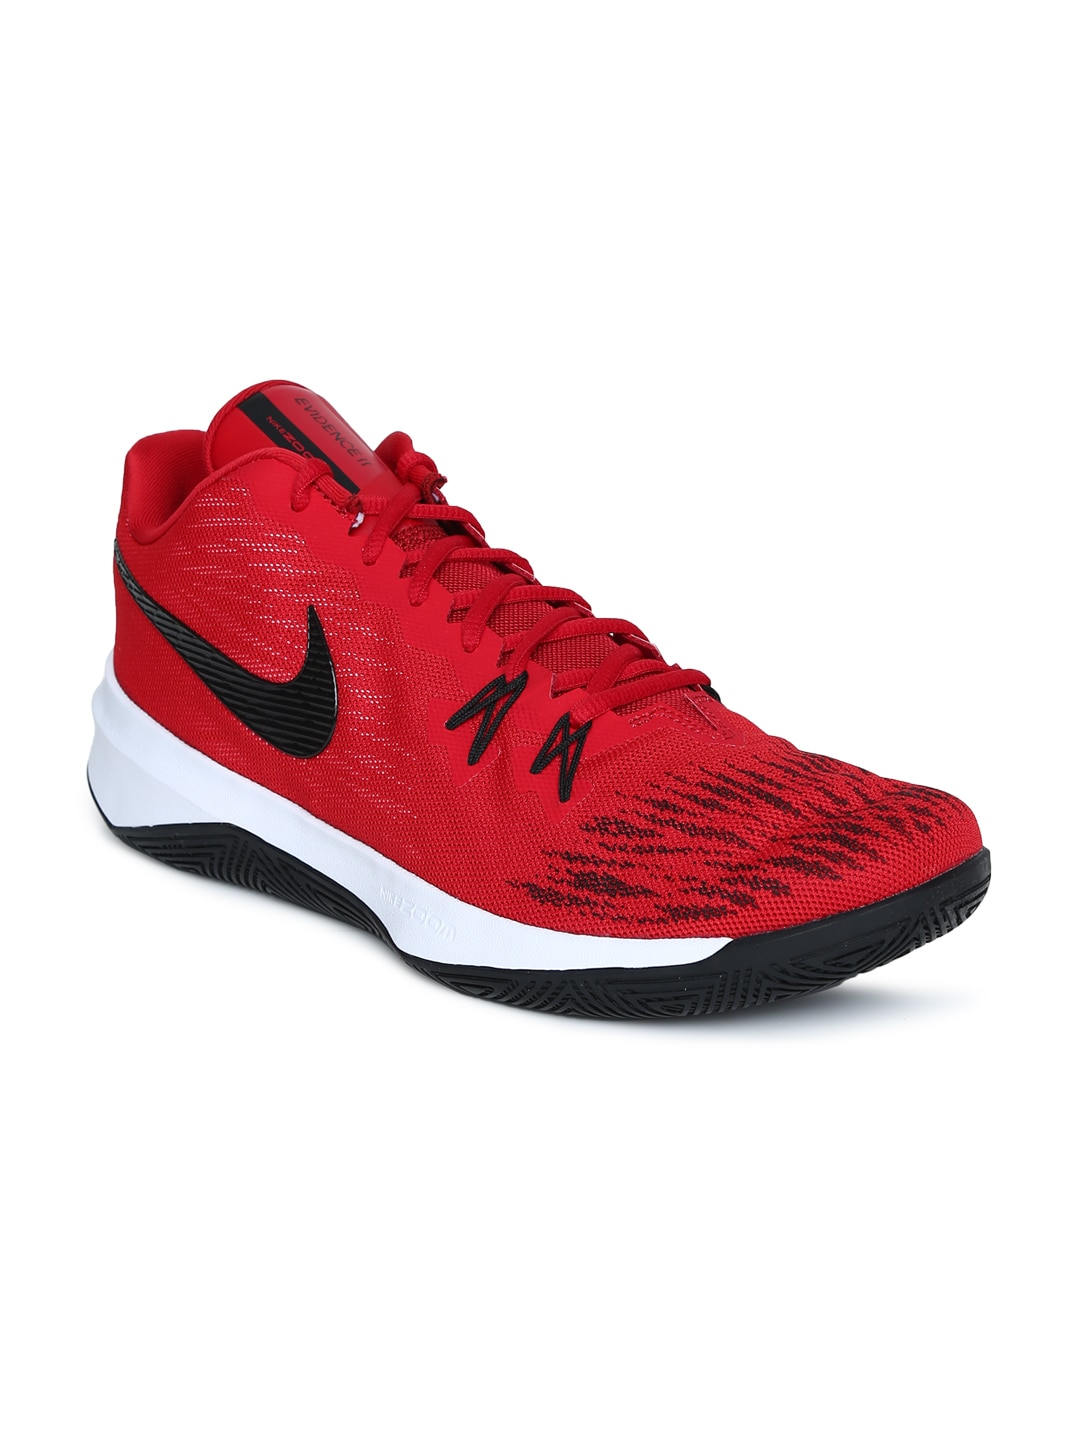 61811273200 Nike Red Basketball Shoes for Men online in India at Best price on ...